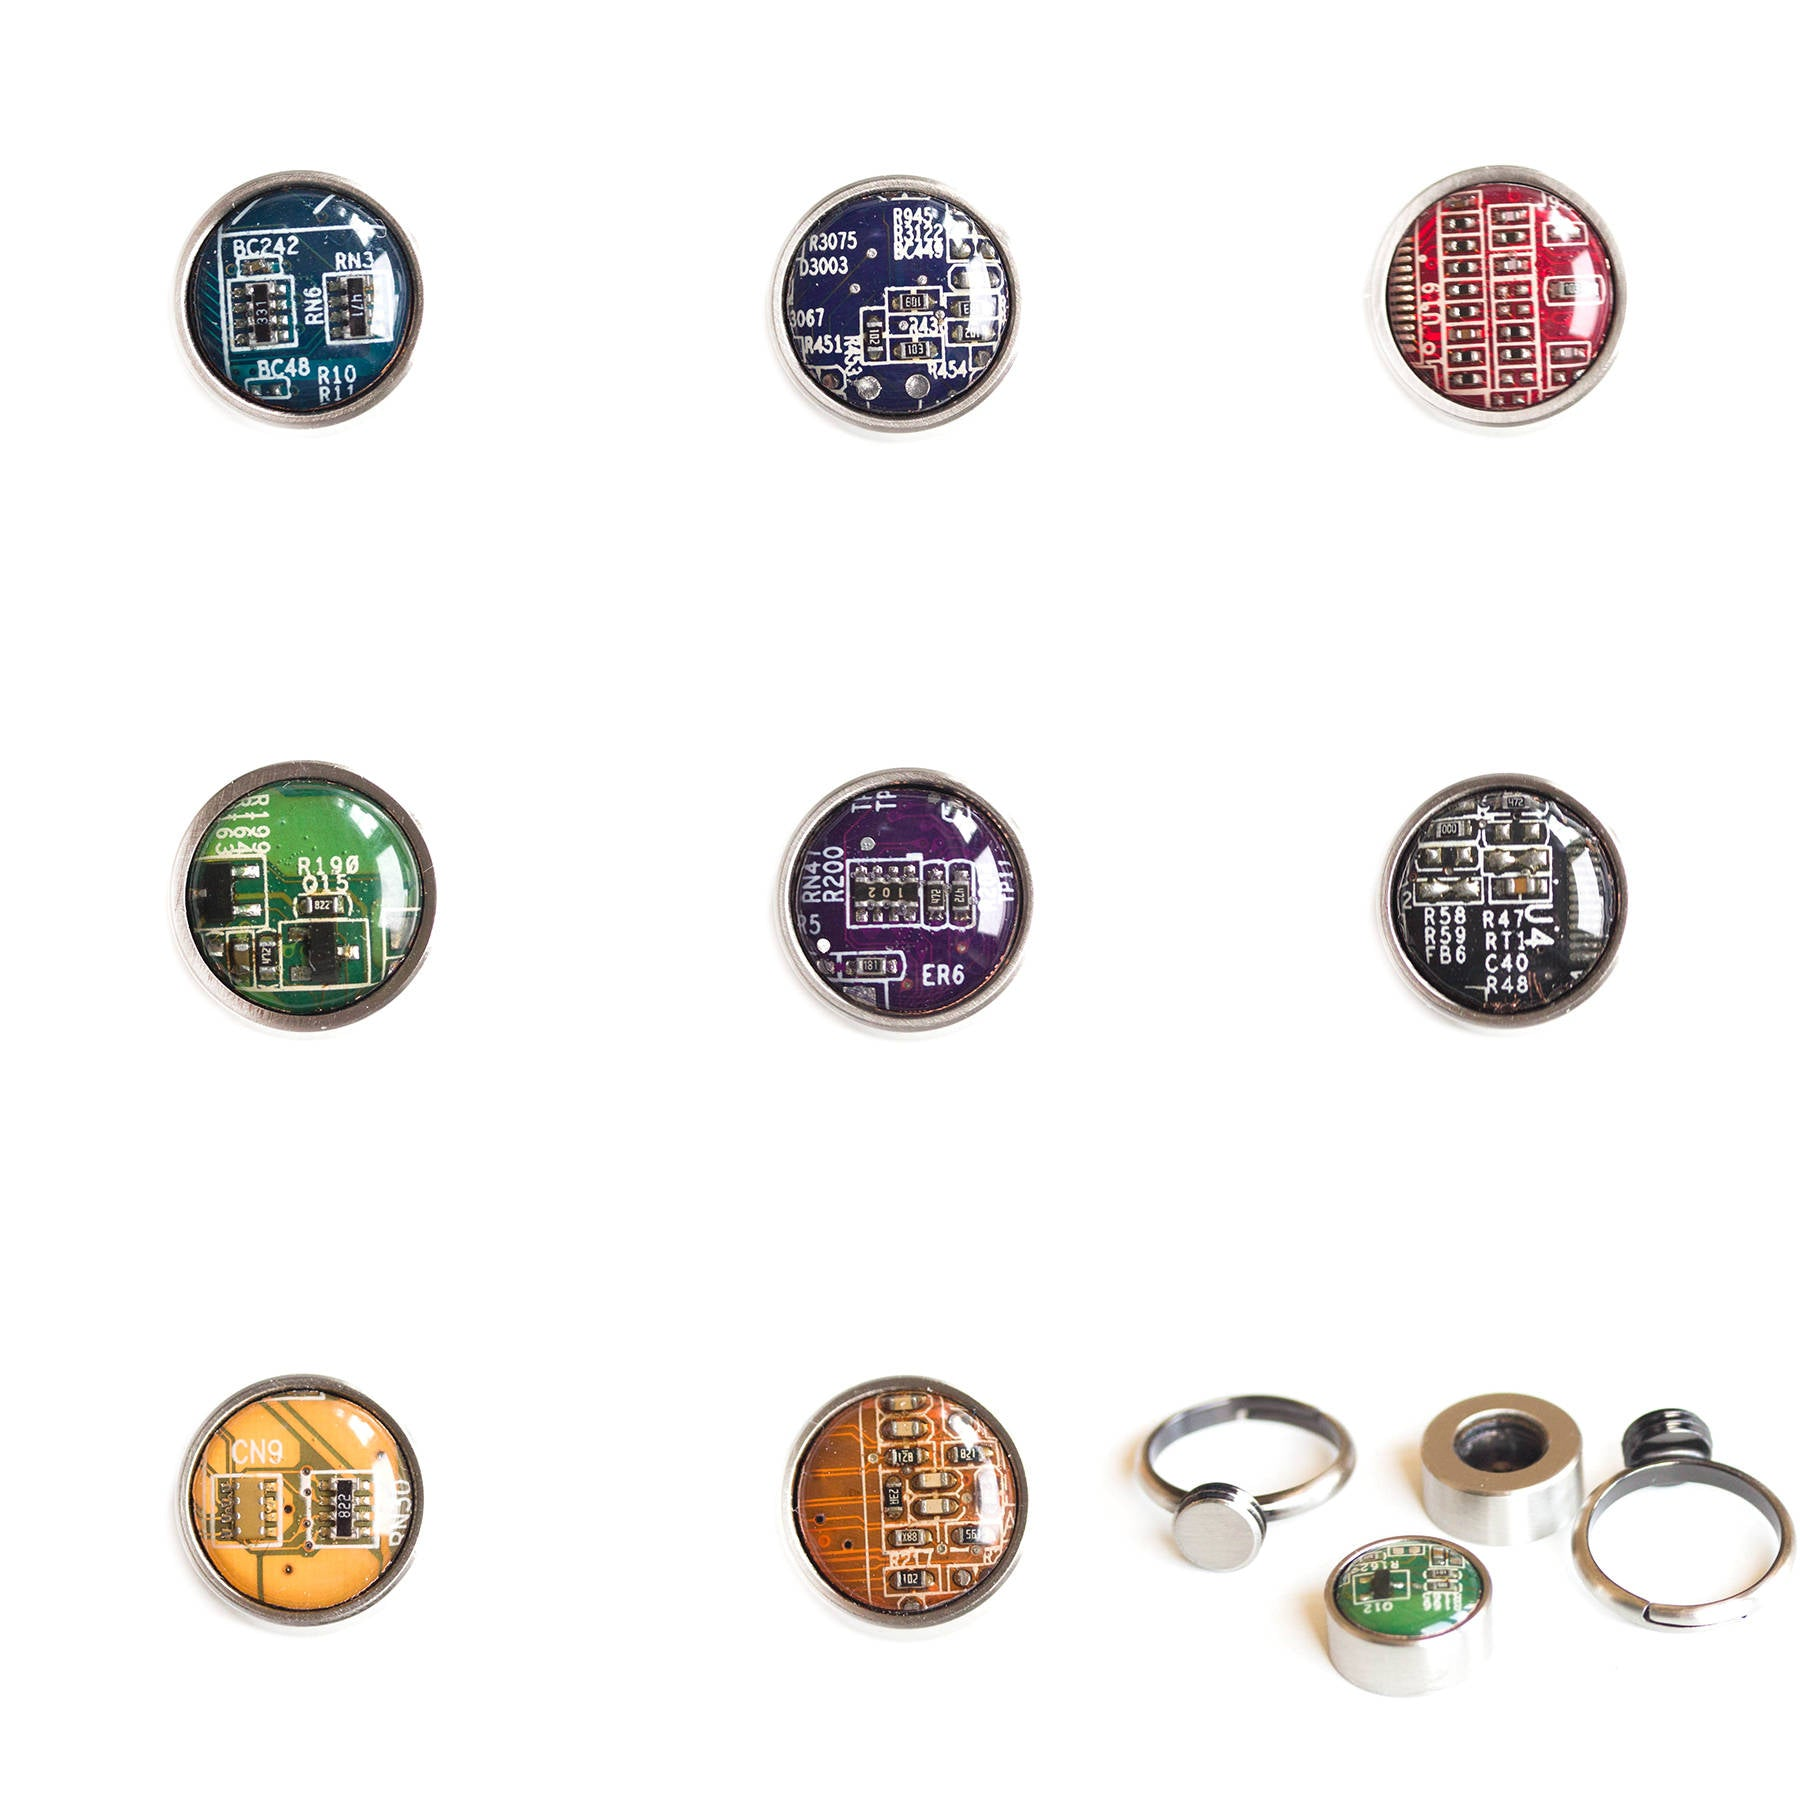 Rings with interchangeable buttons, recycled circuit board ring, unisex jewelry